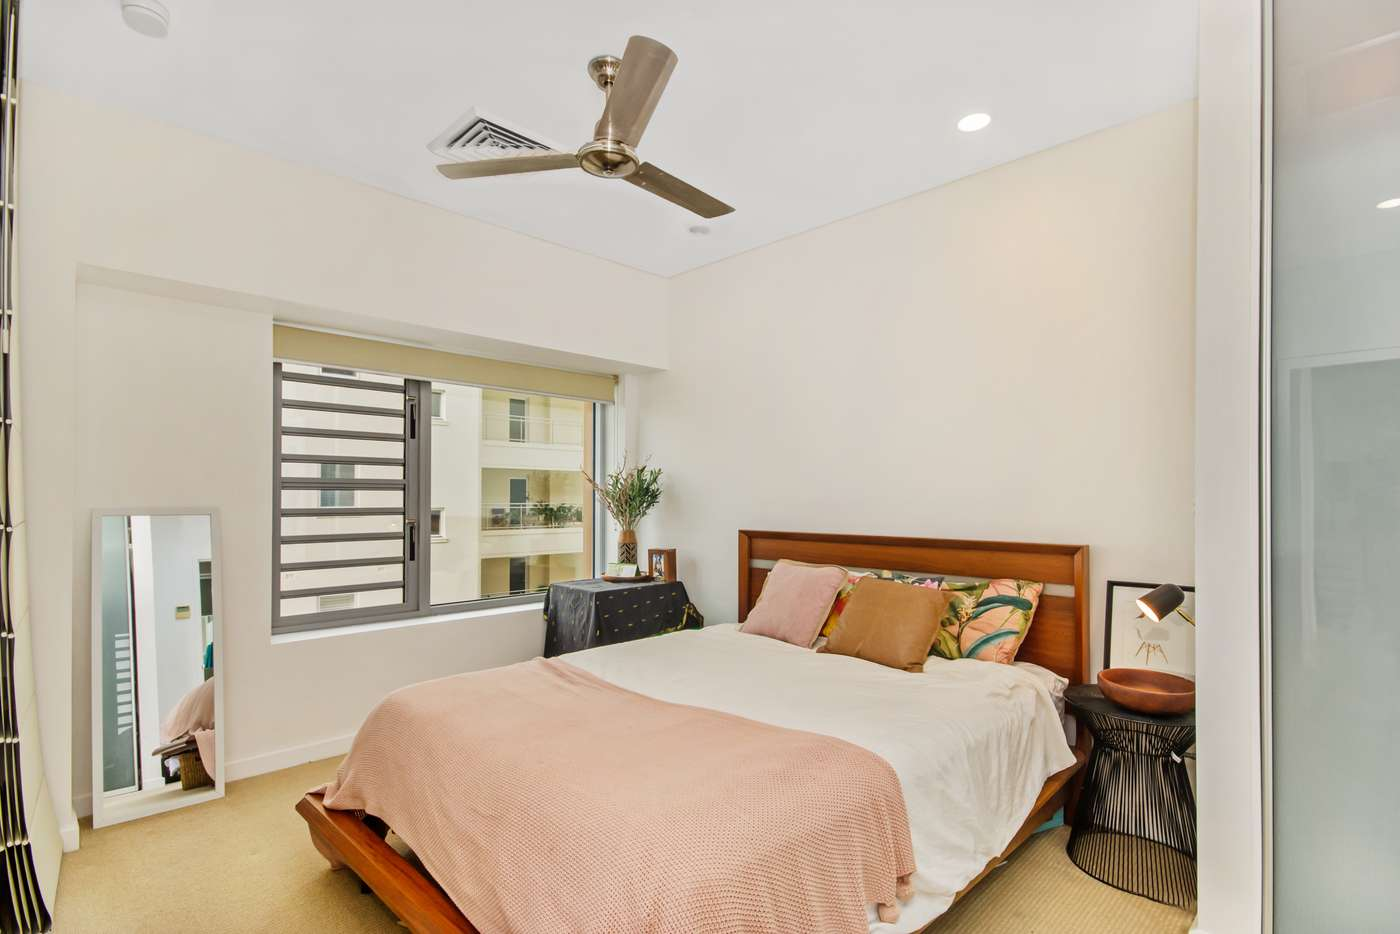 Fifth view of Homely apartment listing, 52/45 Gregory Street, North Ward QLD 4810